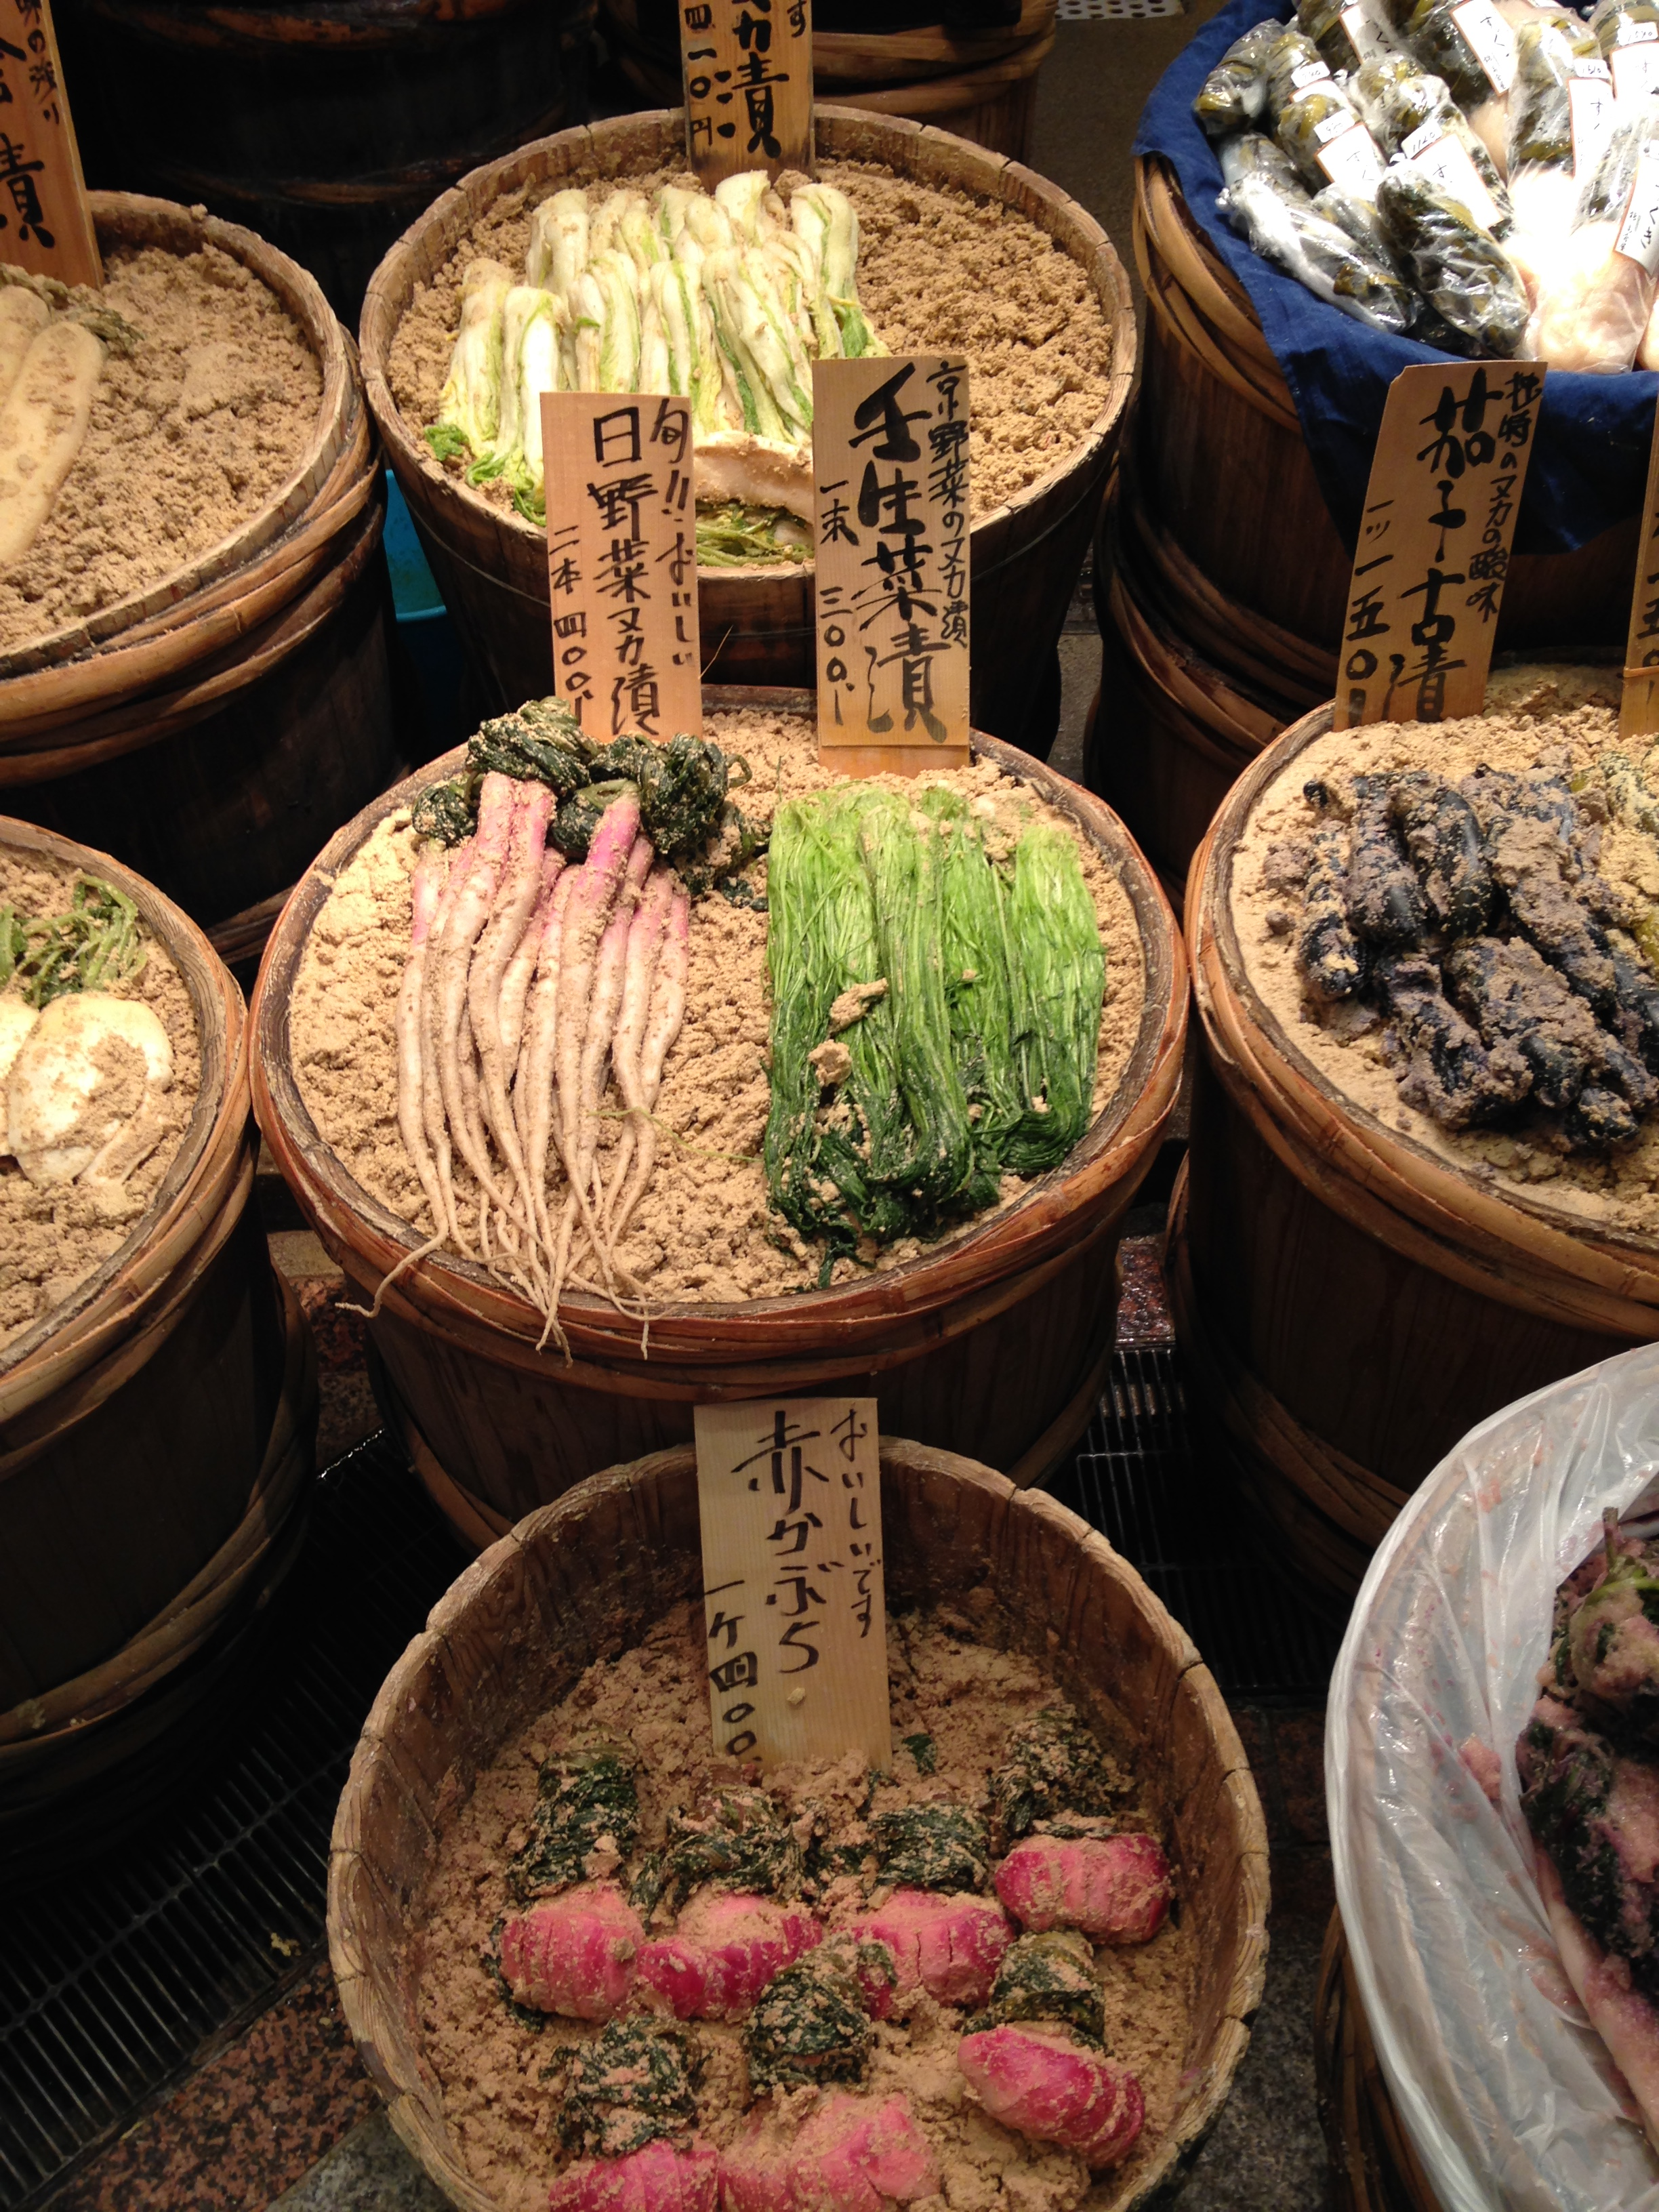 fermenting vegetables at Nishiki Market